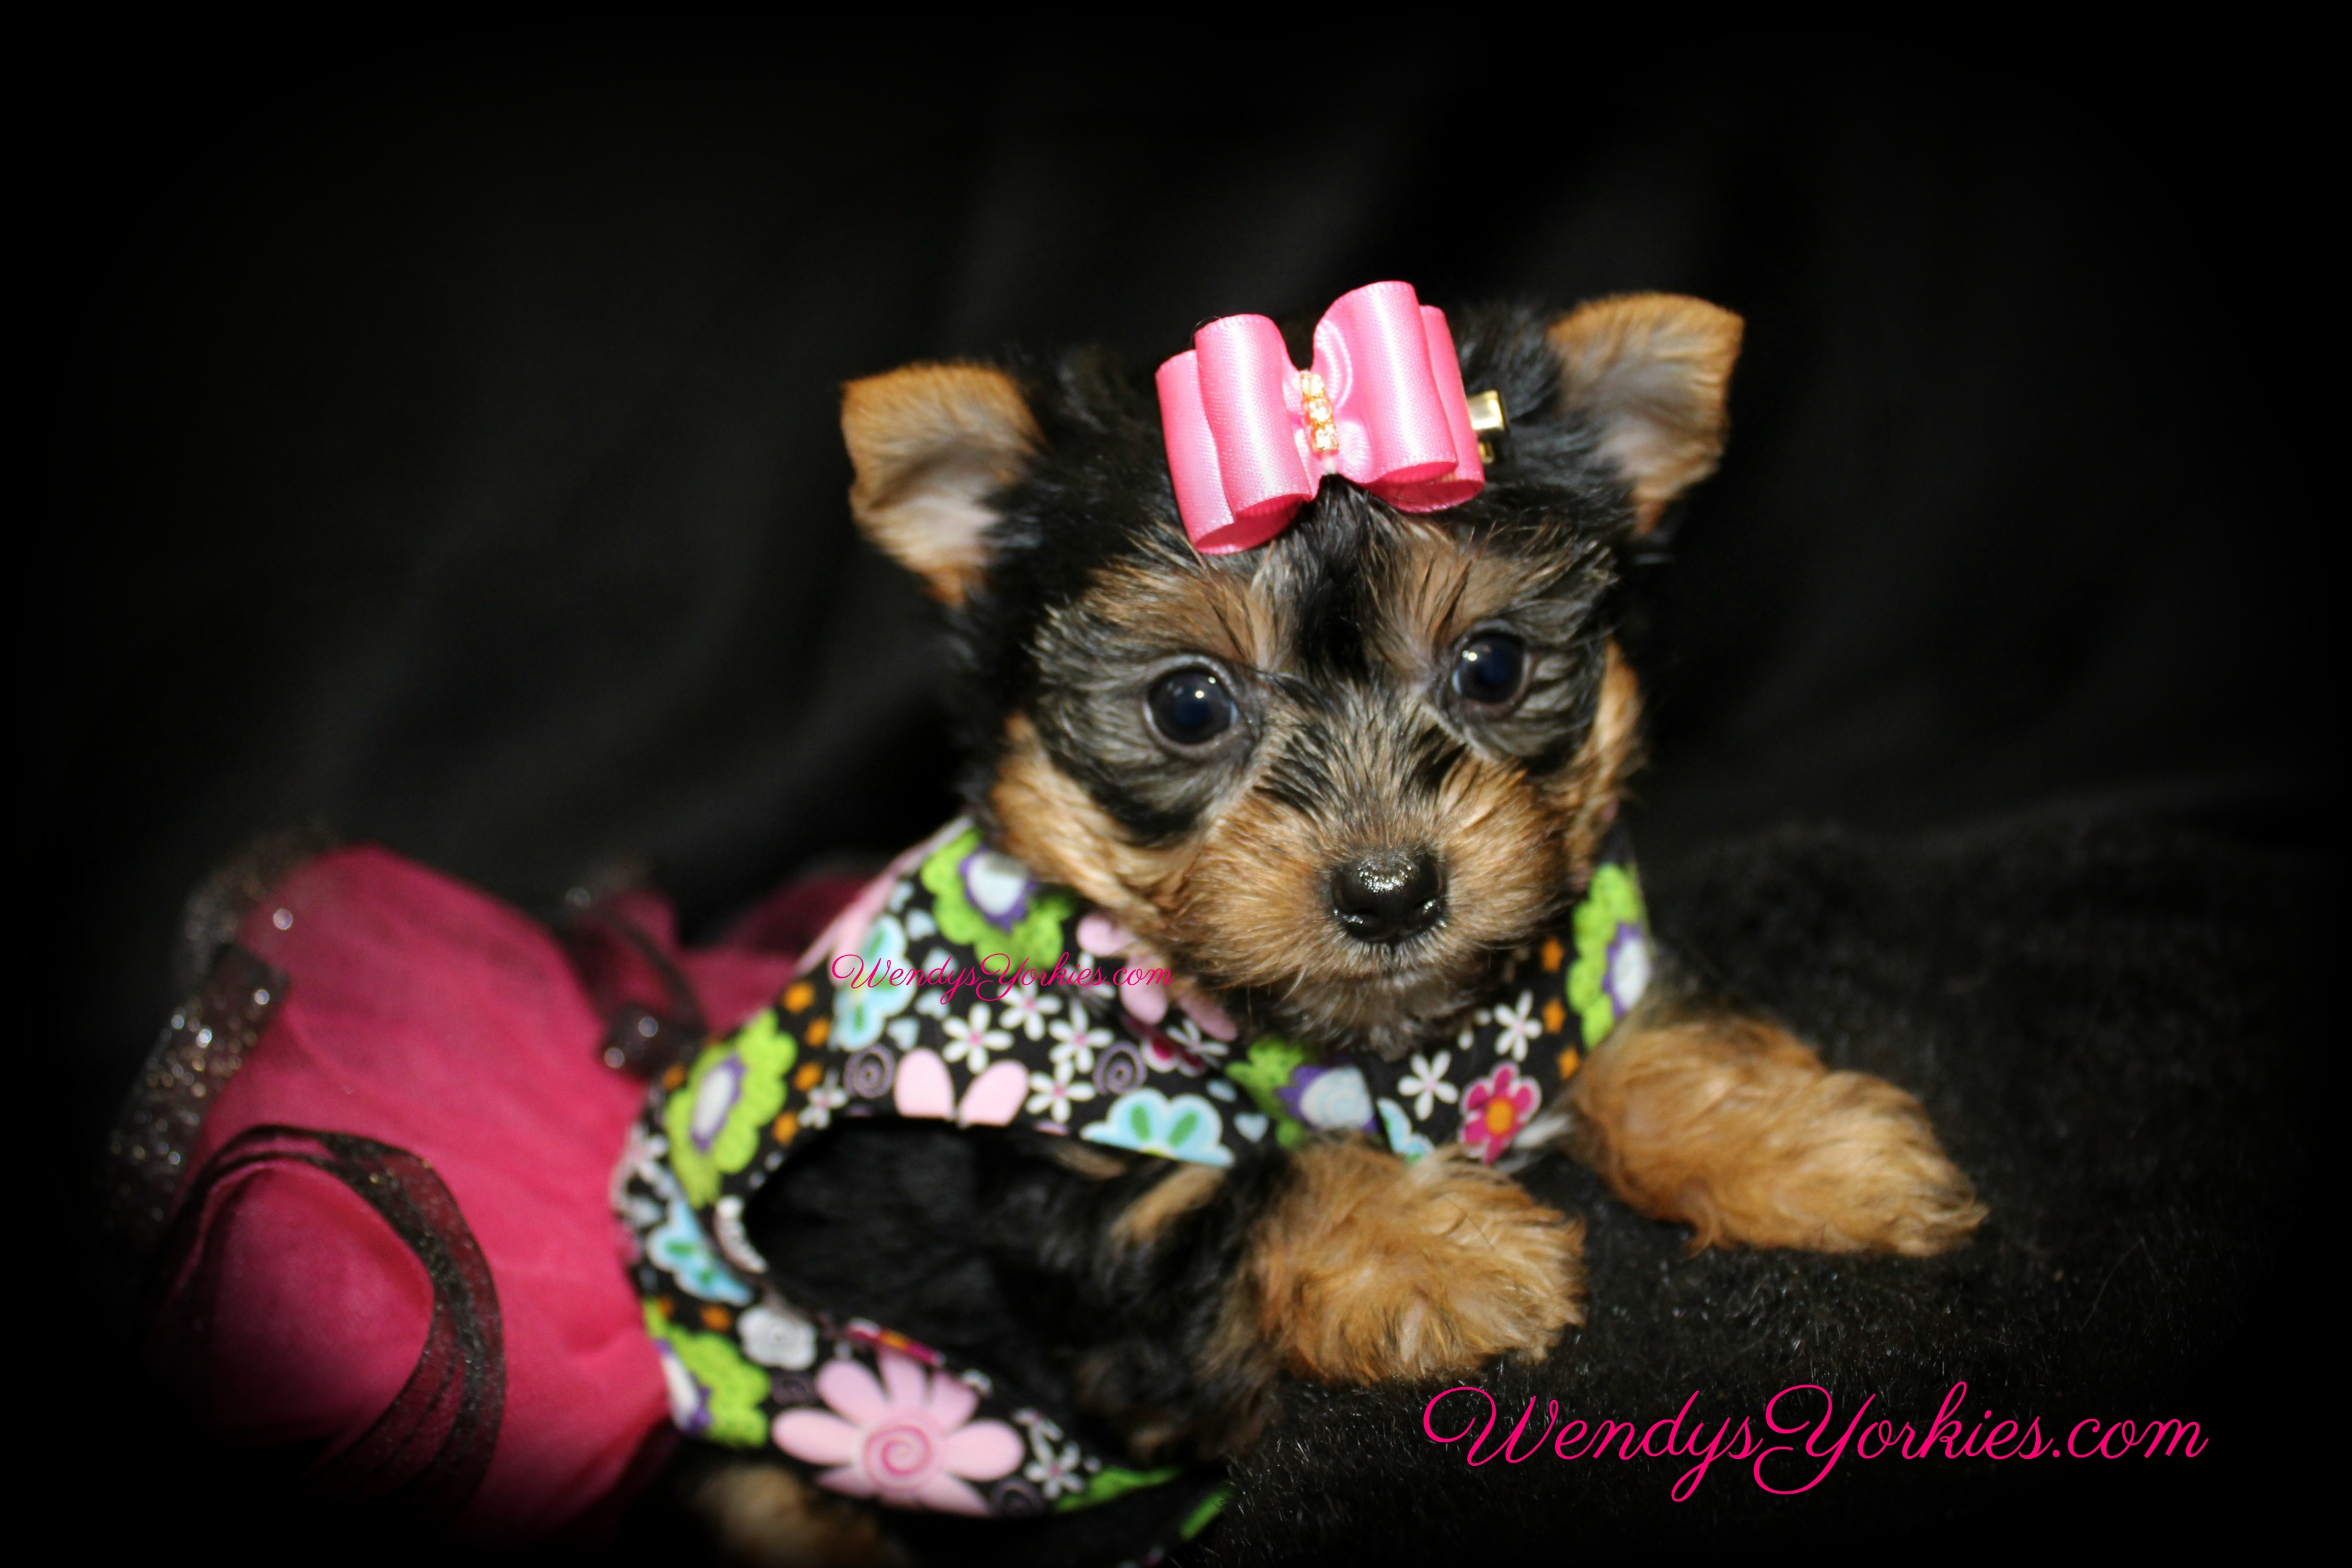 Teacup female Yorkie puppy for sale, WendysYorkies.com, Lexie f2